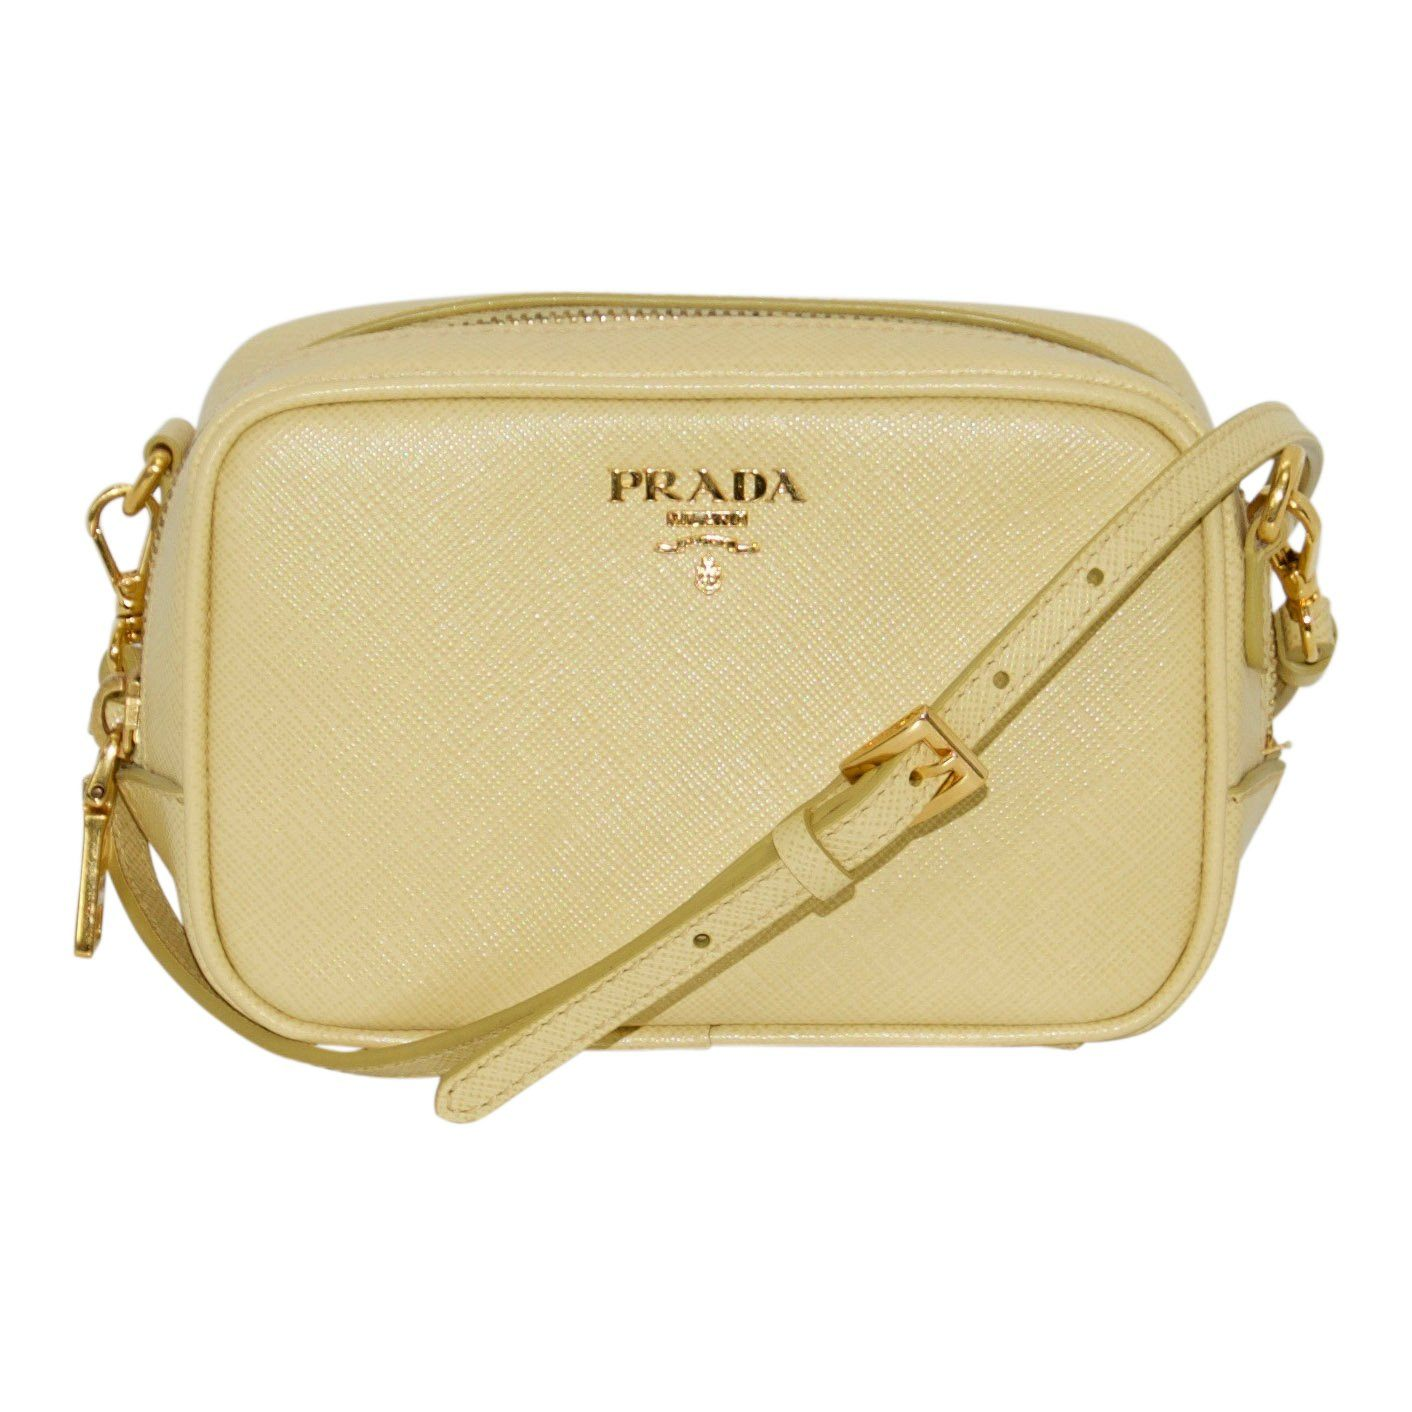 e1b01c6dd6 Prada Mini Saffiano Camera Crossbody Bag - Oliver Jewellery